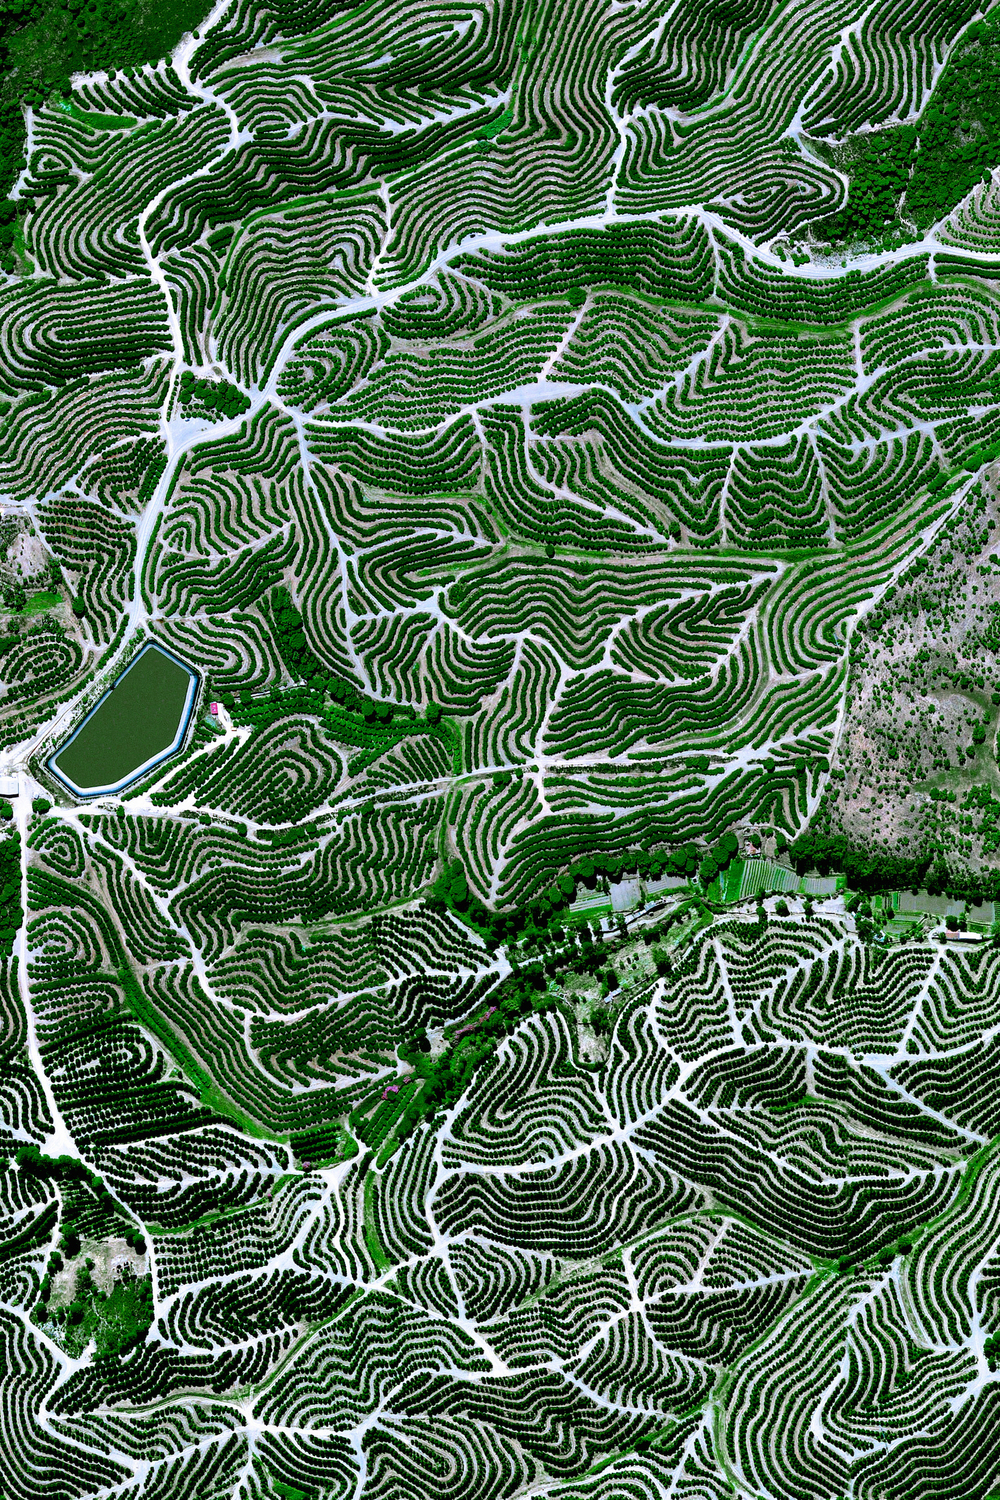 6/5/2016 Fruit orchards Huelva, Spain 37.714546°, -6.532834°   Fruit trees swirl on the hills of Huelva, Spain. The climate here is ideal for this growth with an average temperature of 17.8° C (64° F) and a relative humidity between 60% and 80%.